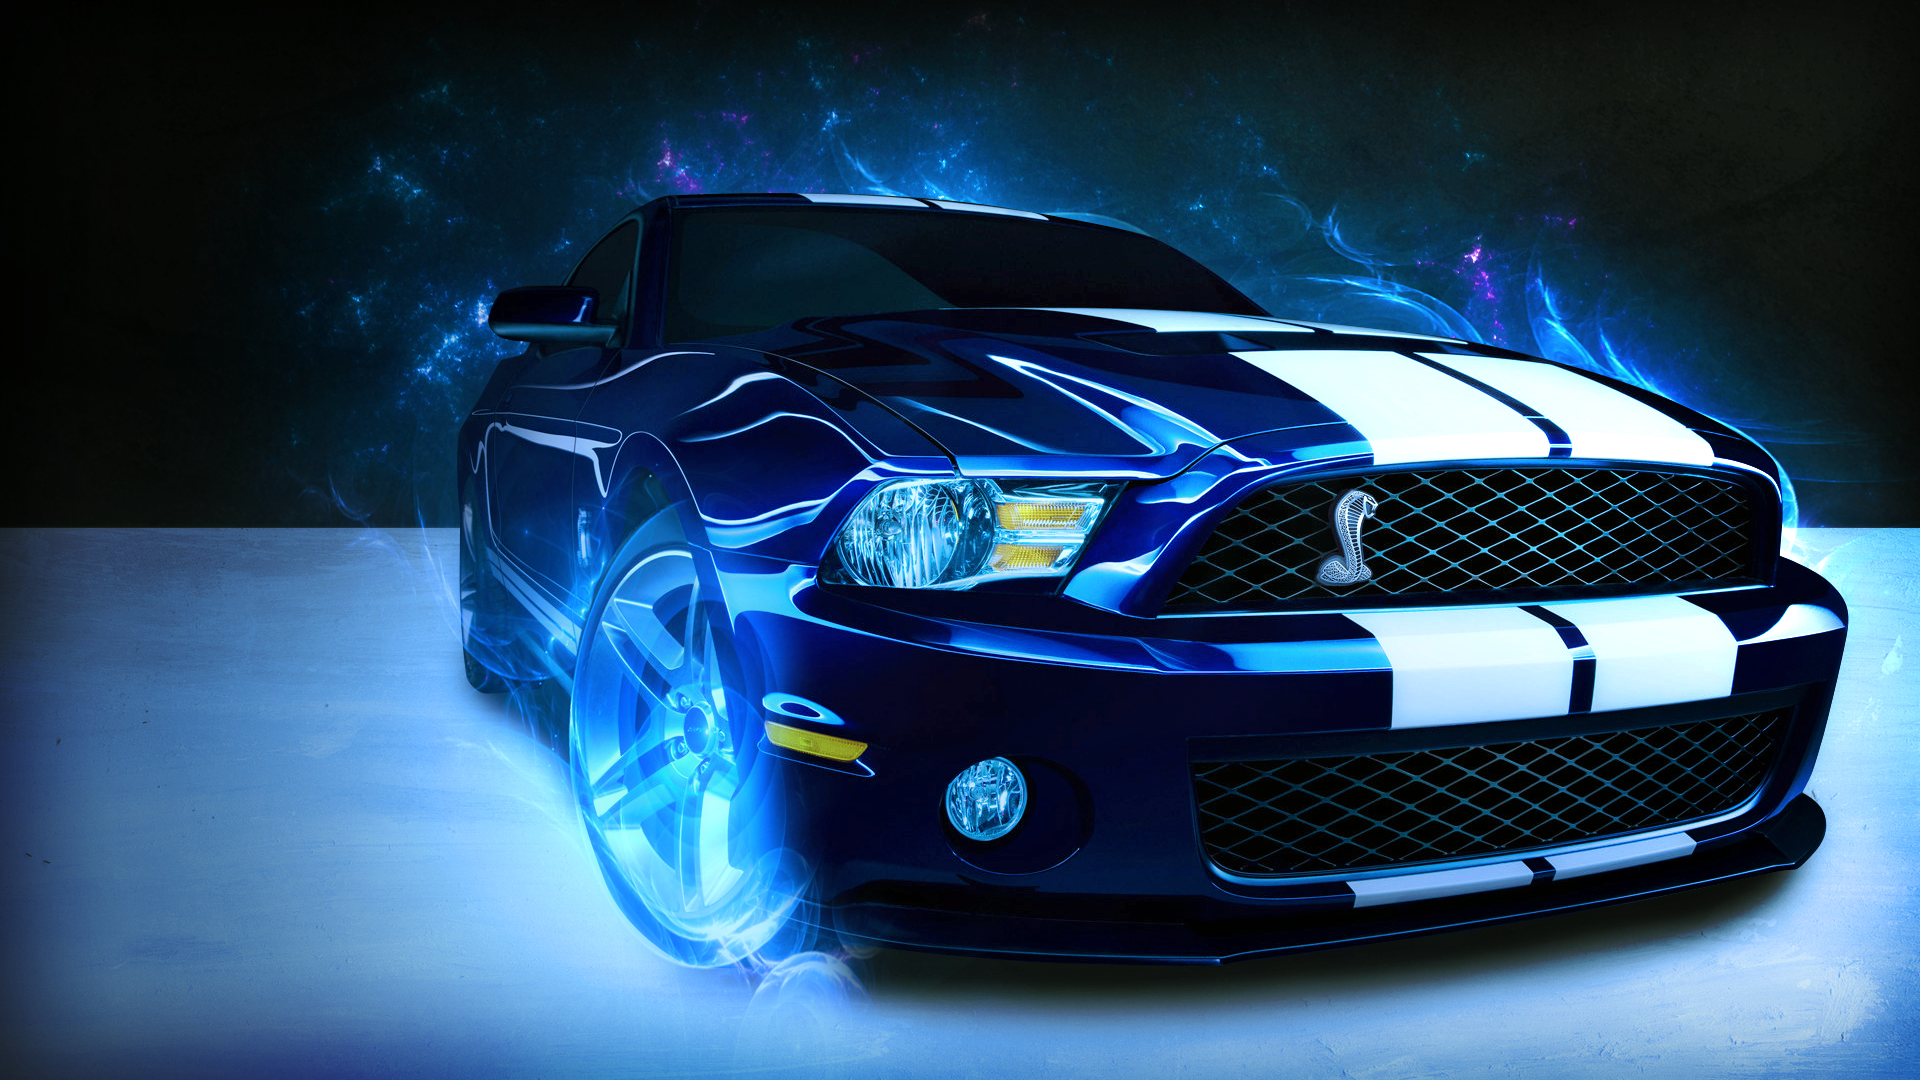 Shelby Mustang 1080p Wallpaper by MarkyDMan 1920x1080